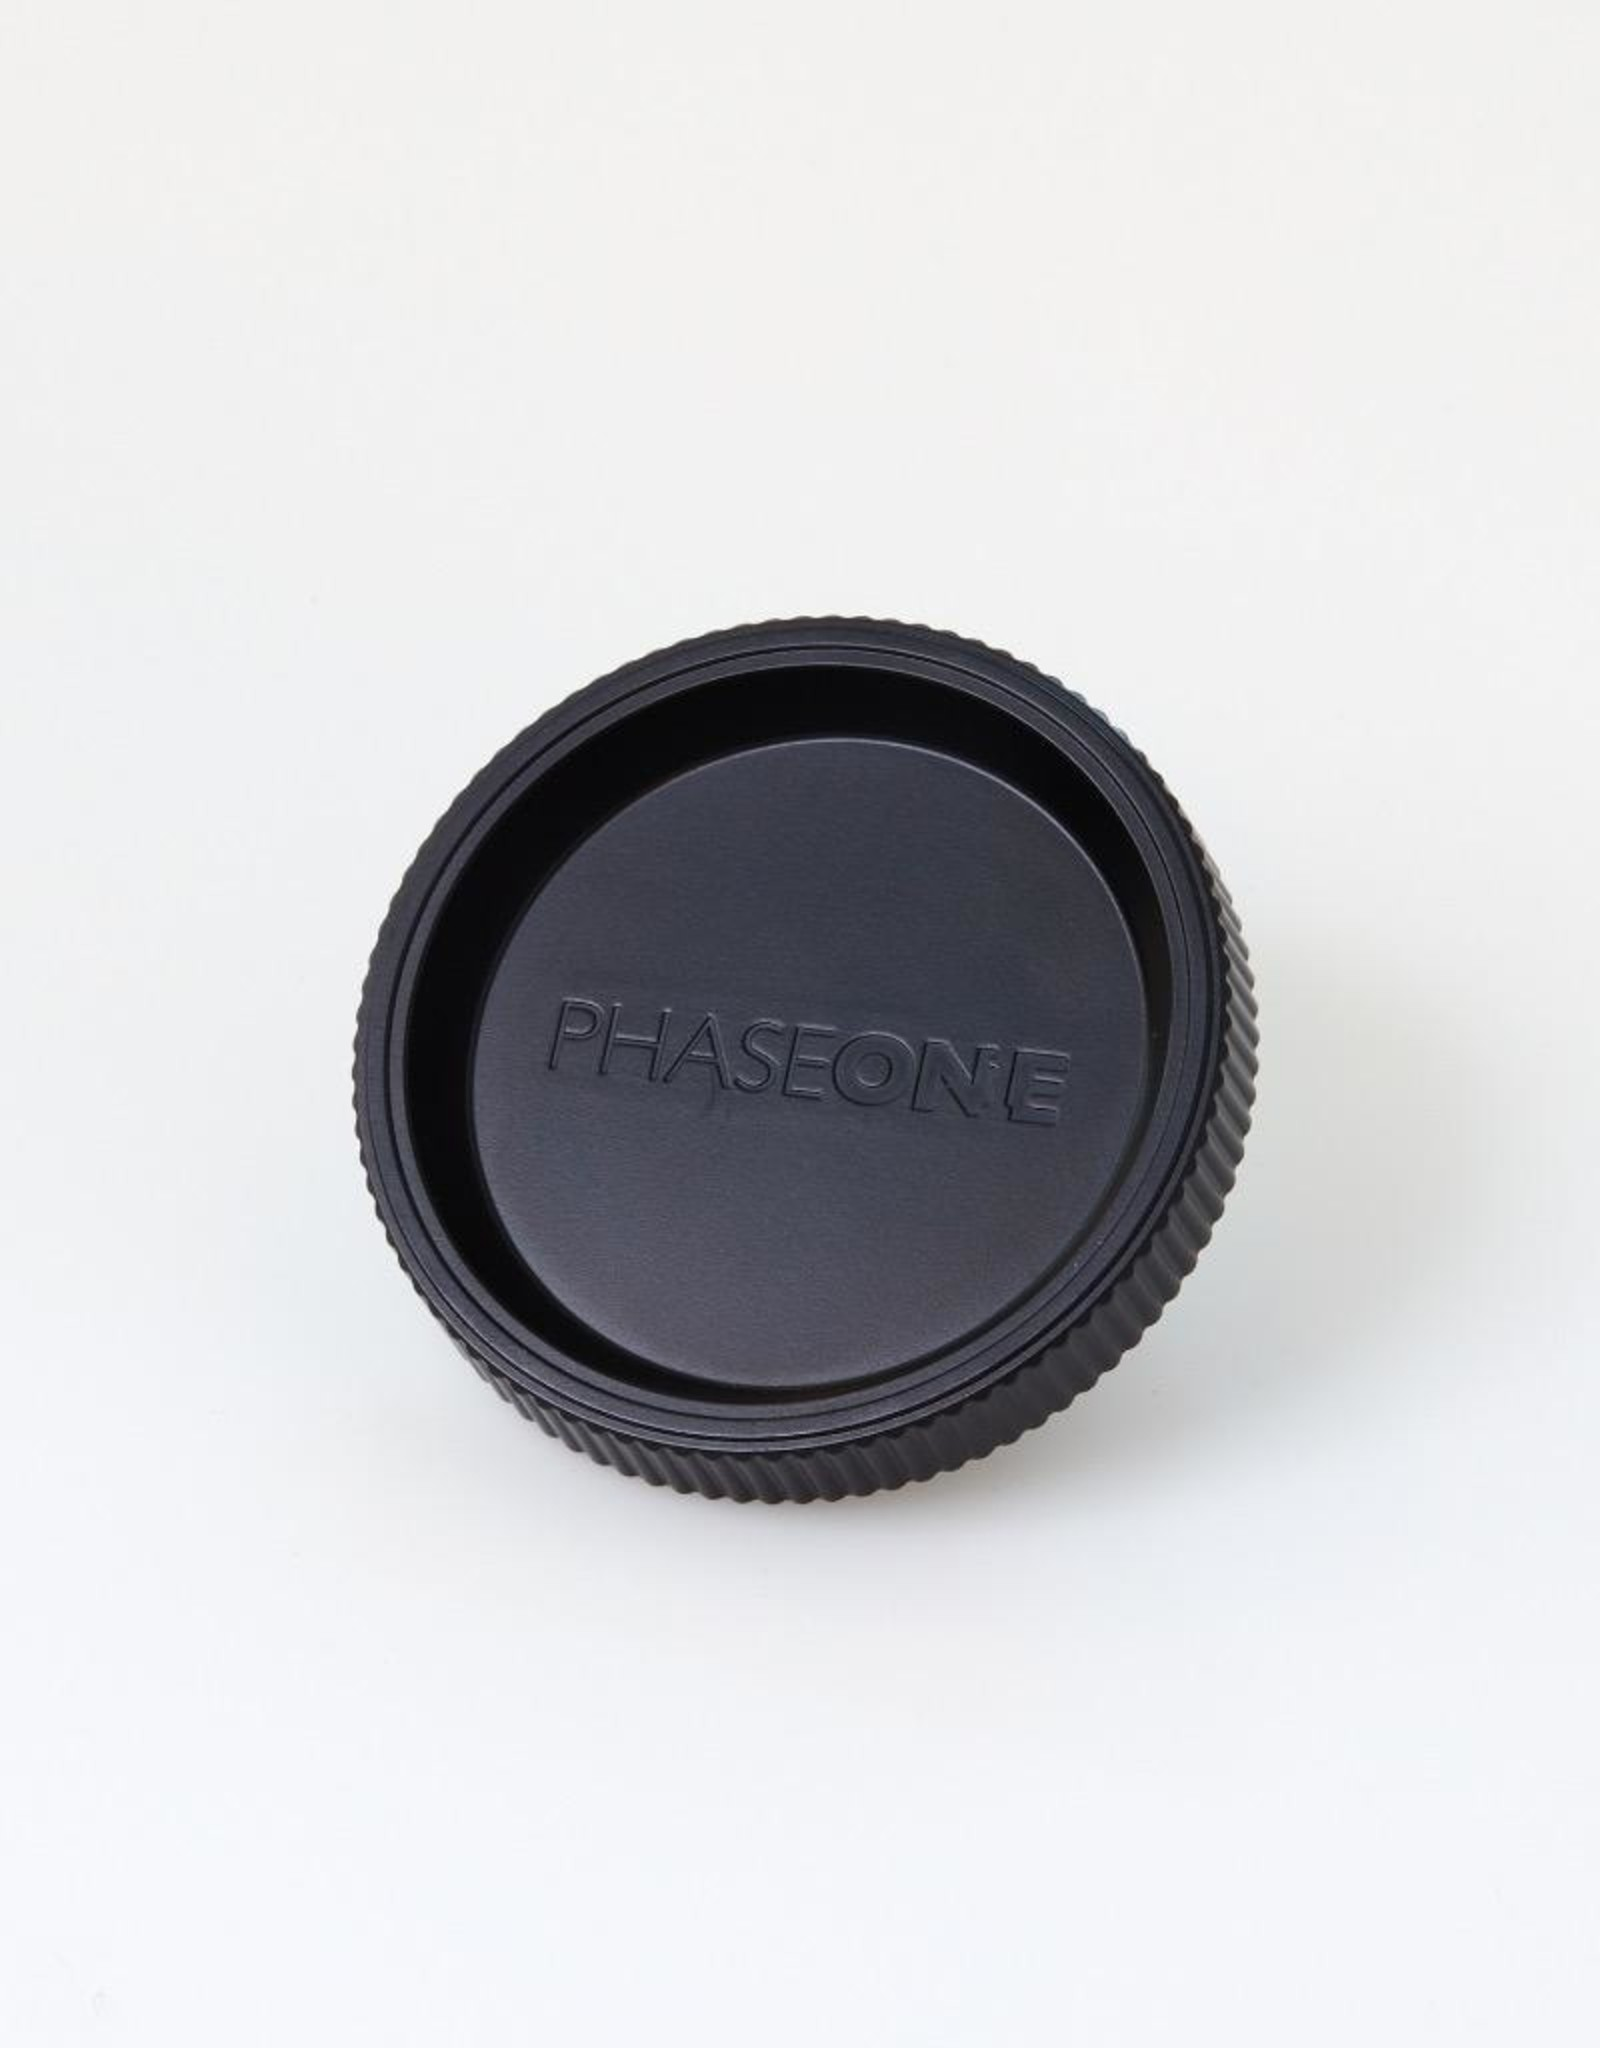 Phase One Phase One XF Camera body Lens port cover